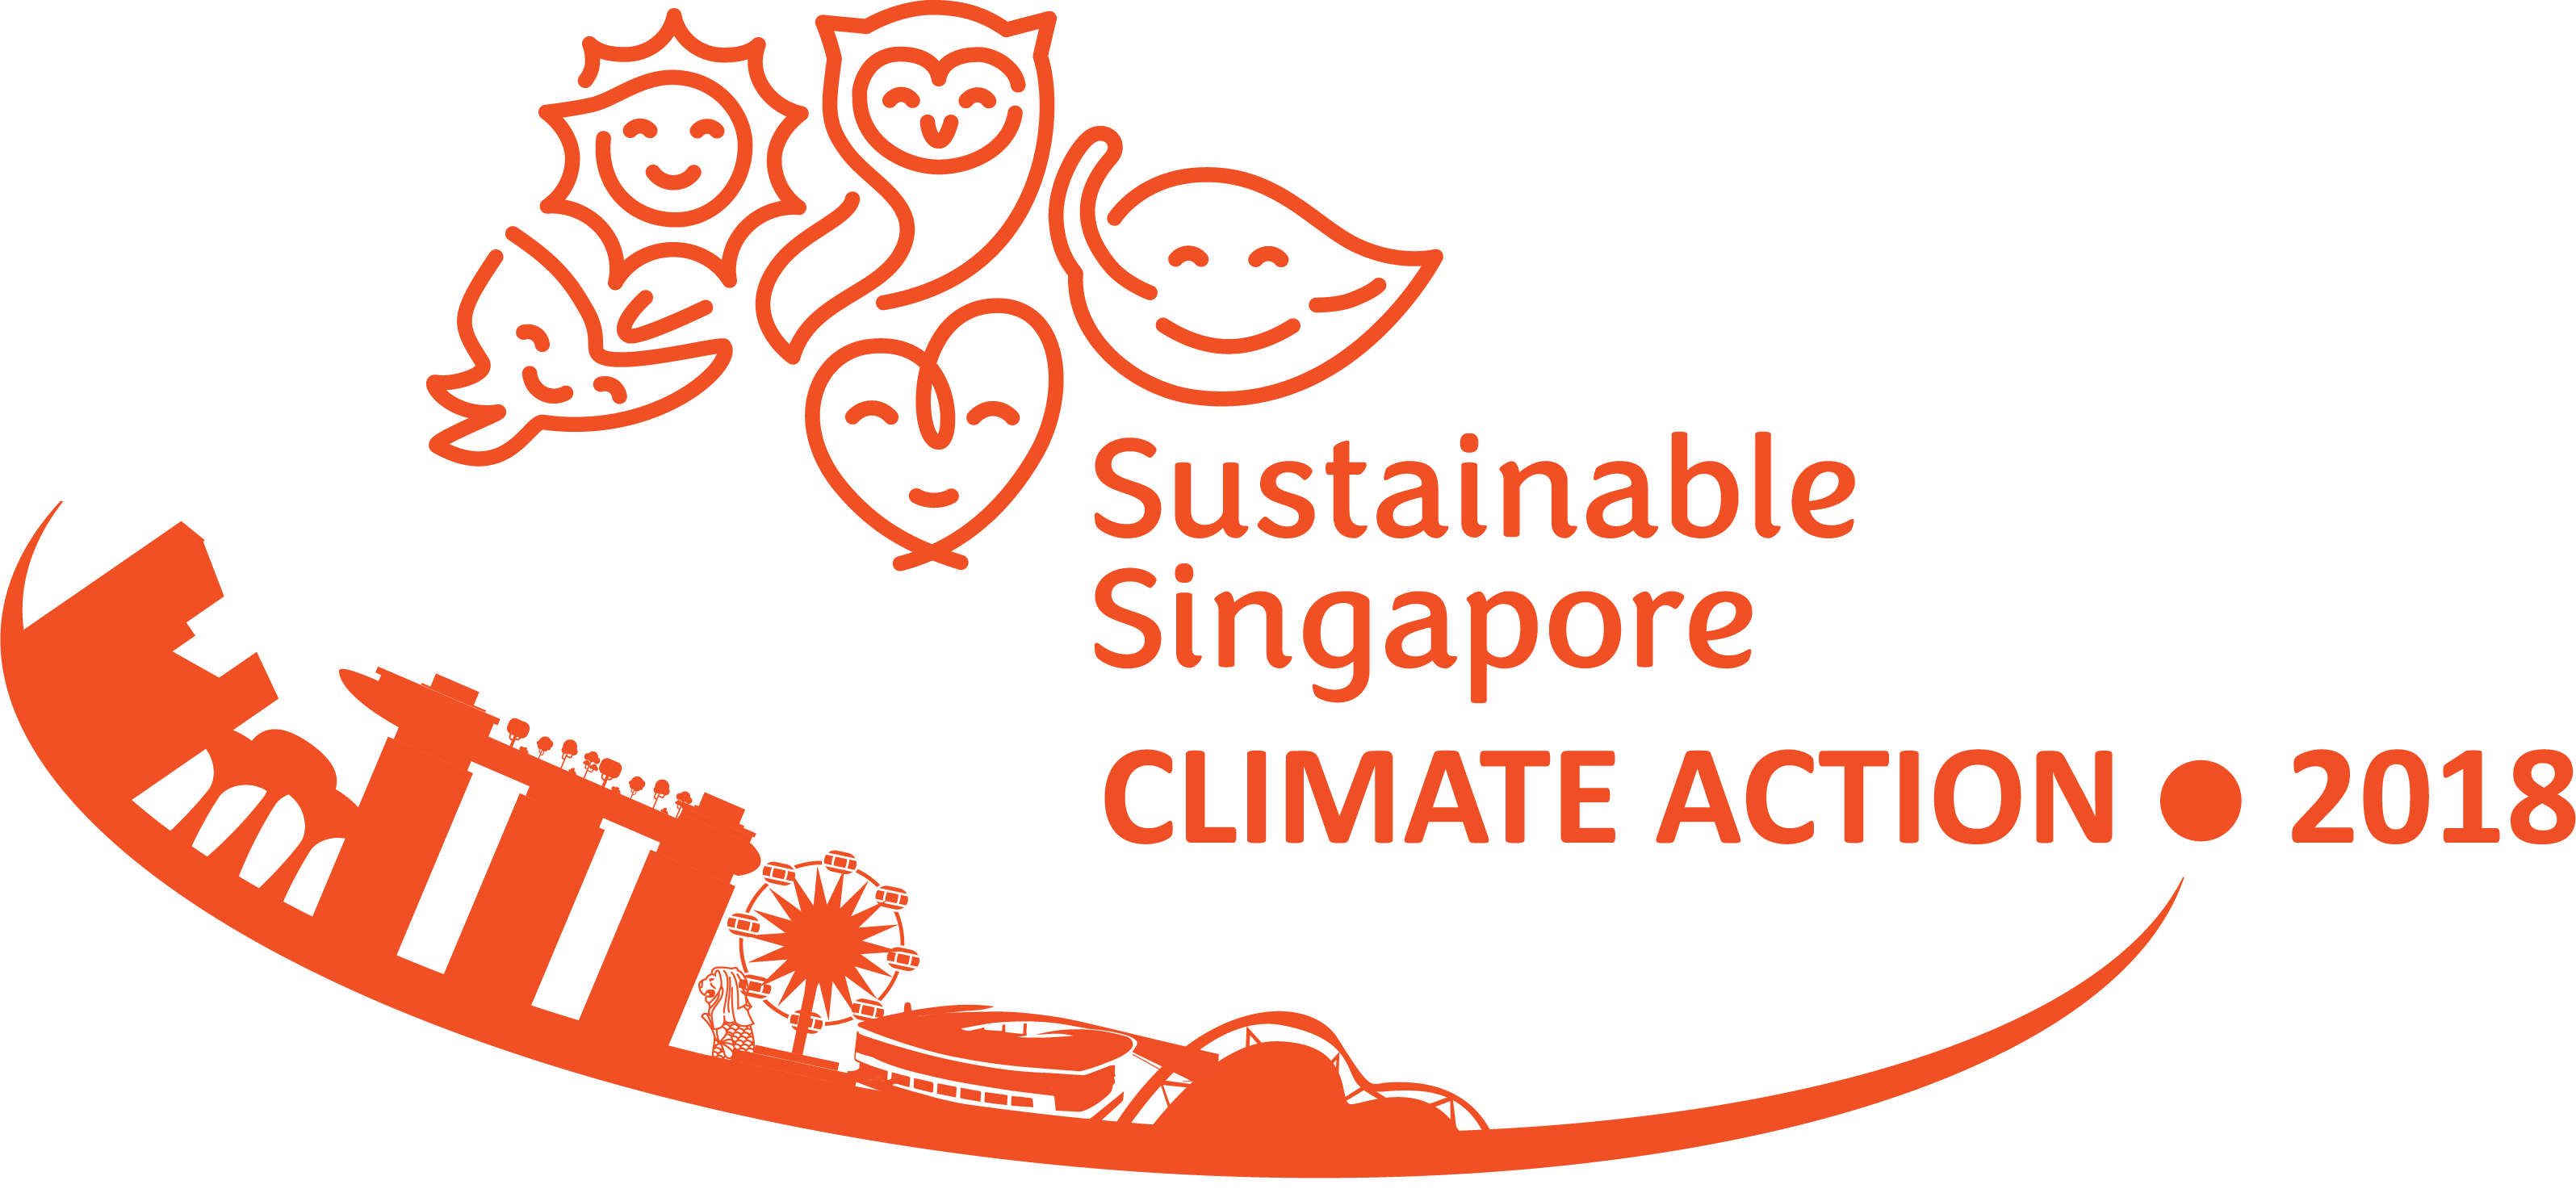 2018: Singapore Year of Climate Action